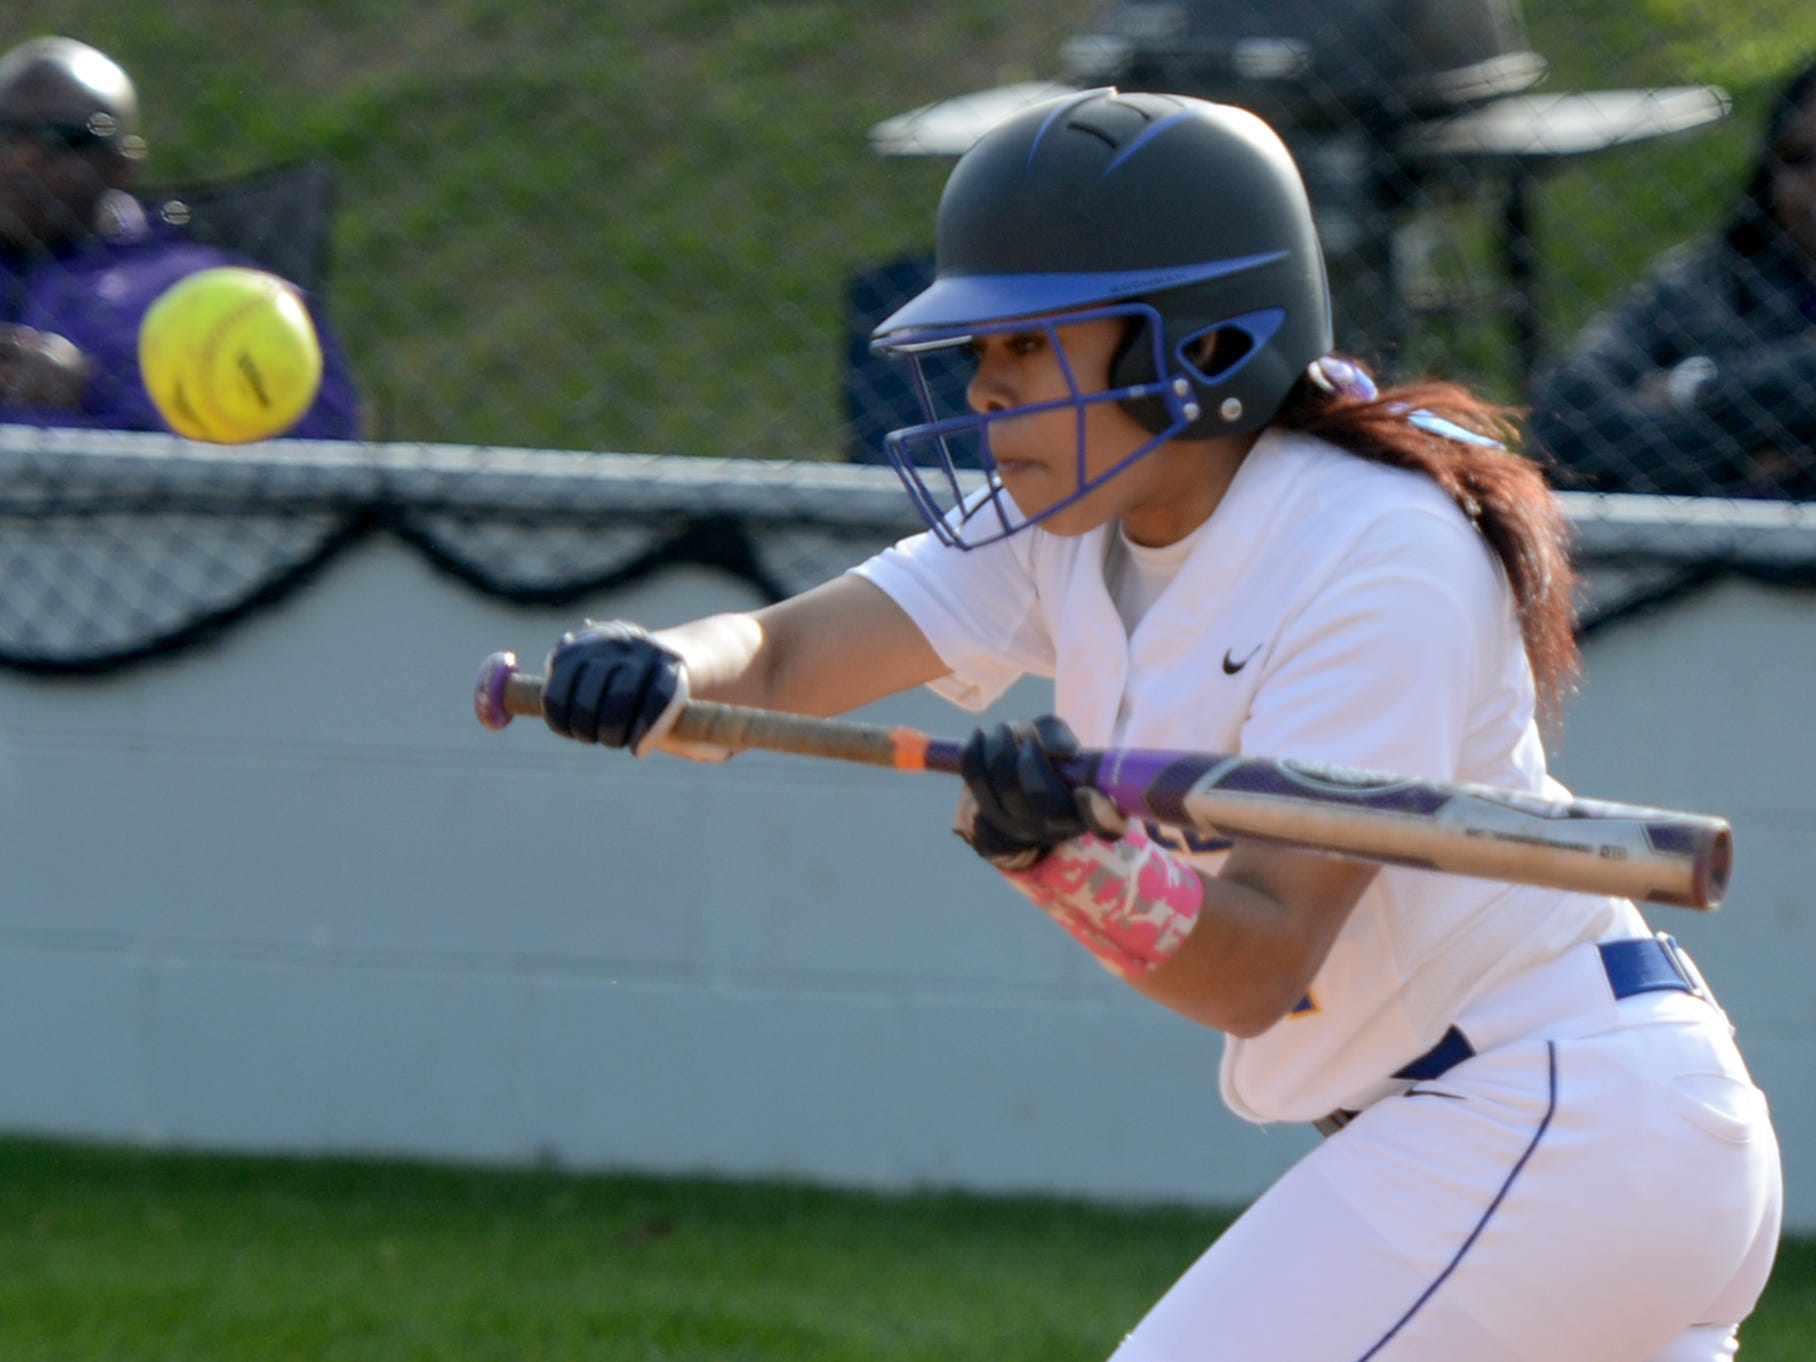 Jackson Christian's Kacie Lynch goes for a bunt during Monday's game against Madison.